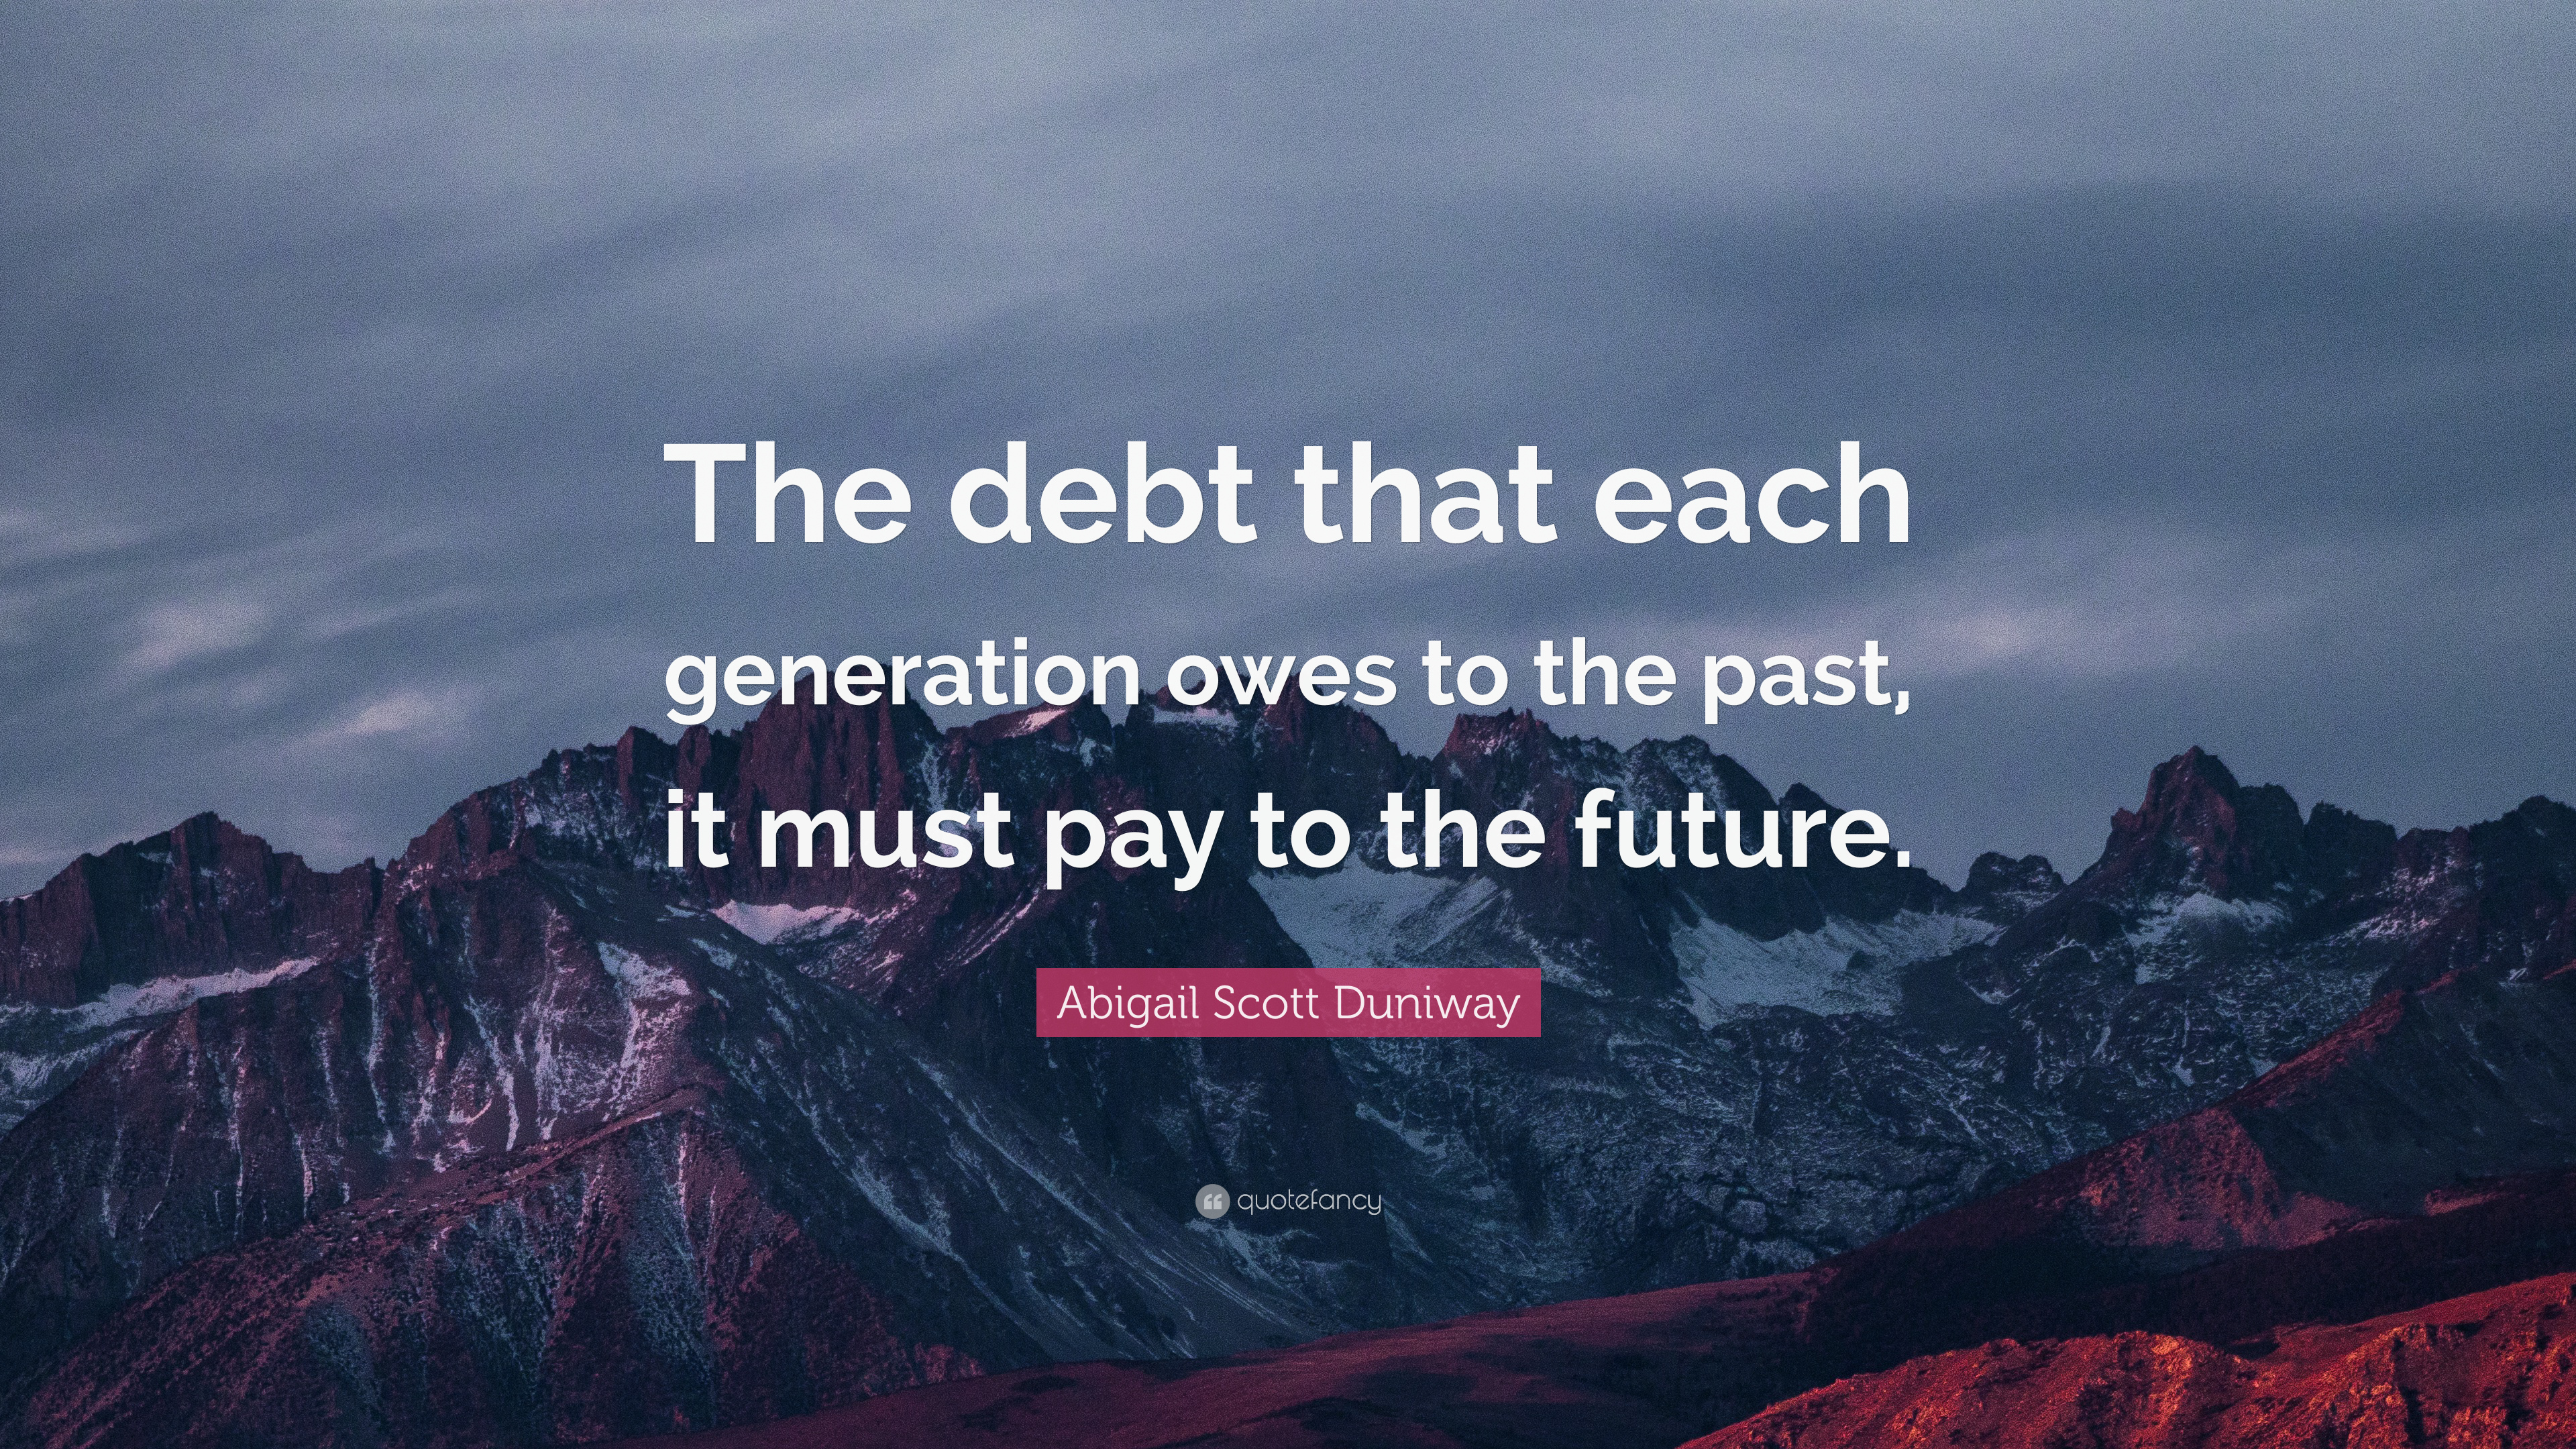 The future generation will pay the